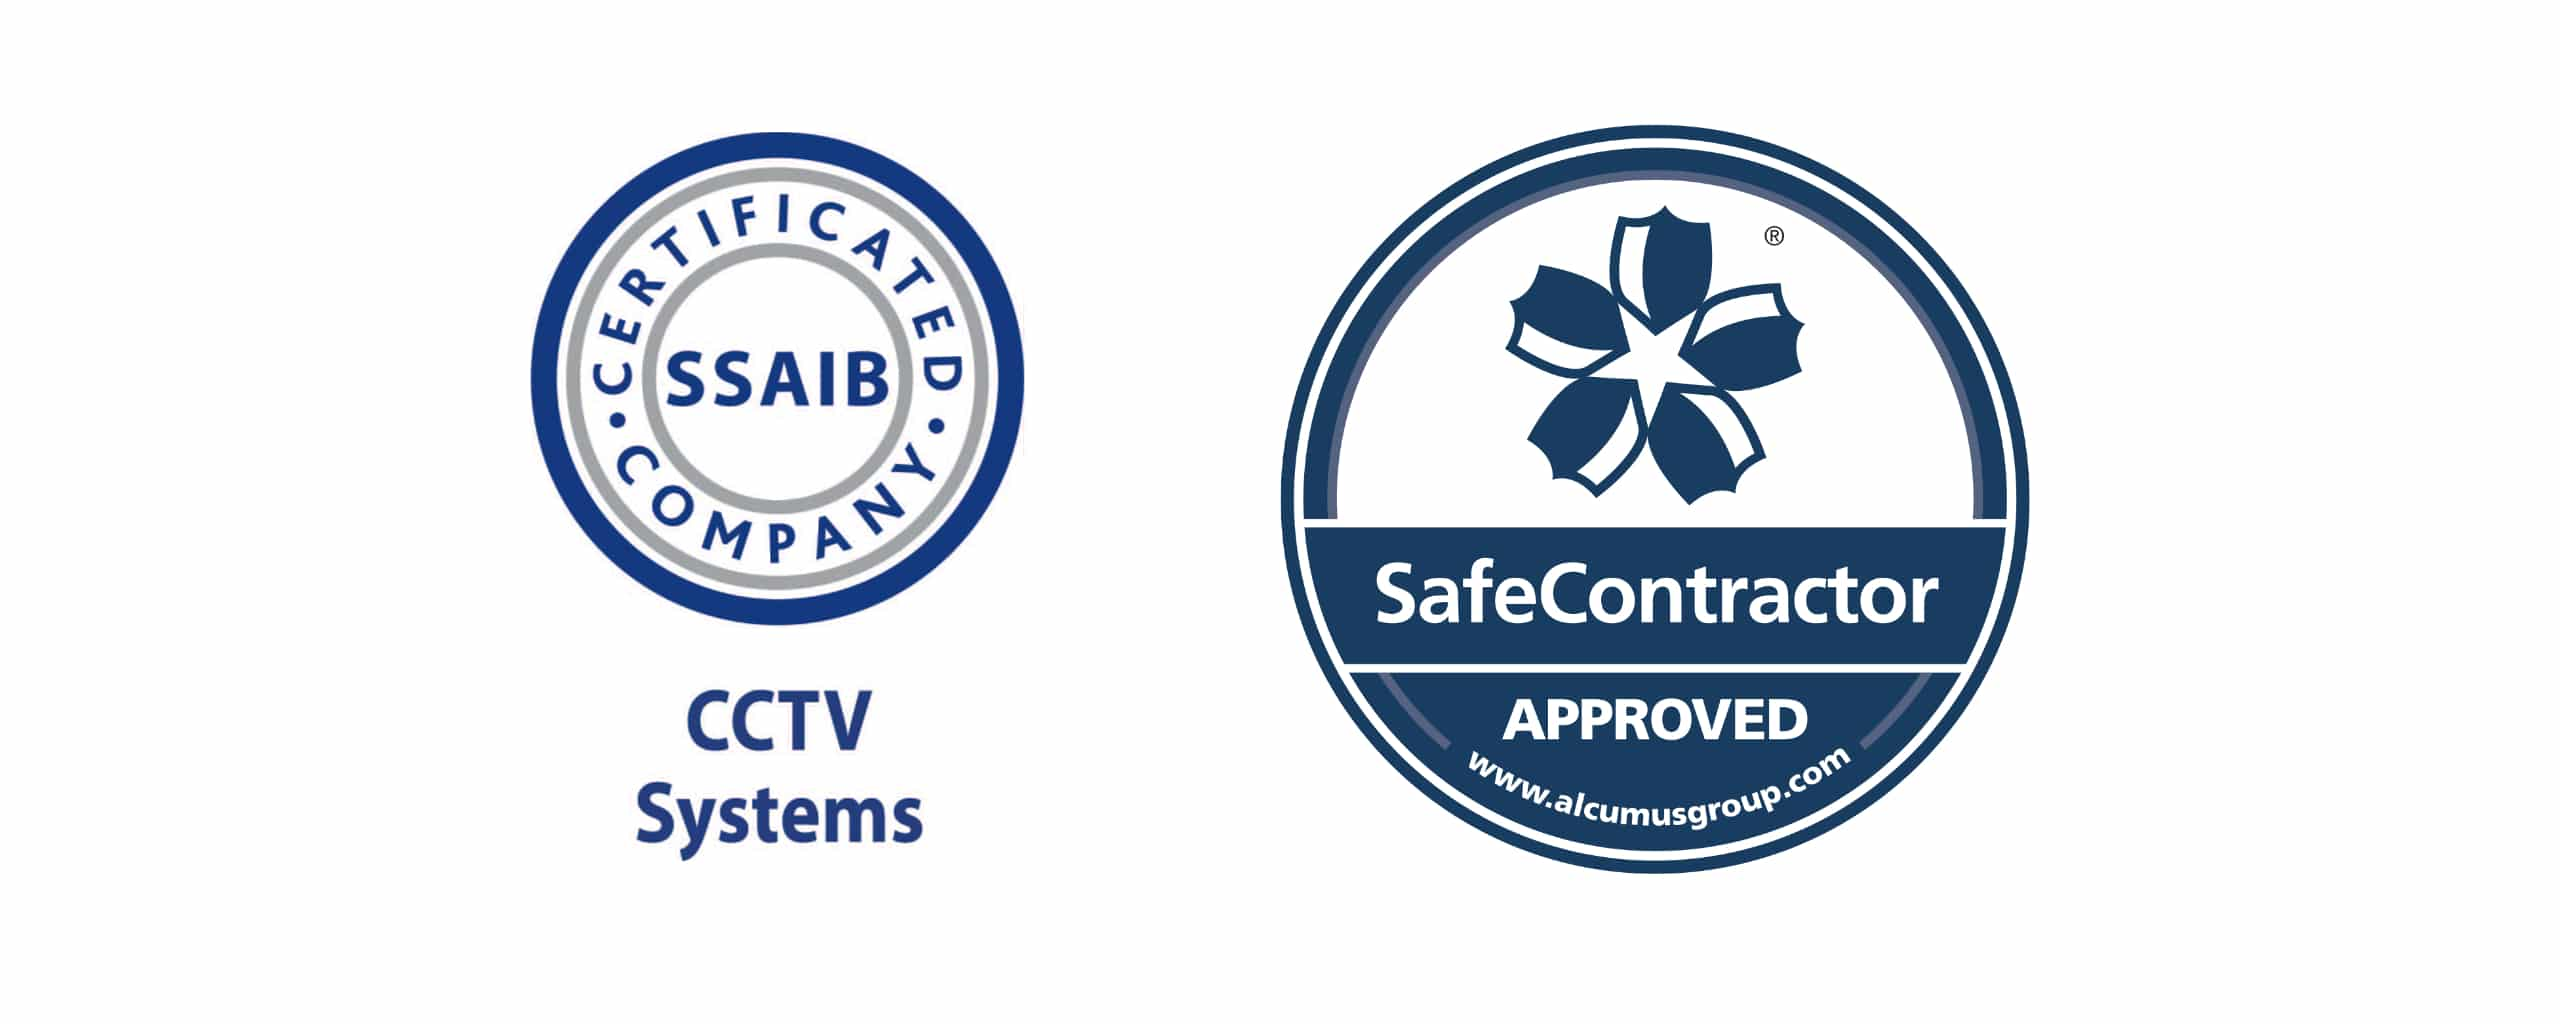 Seen Security - Safe Contractor Accreditation & SSAIB CCTV approved